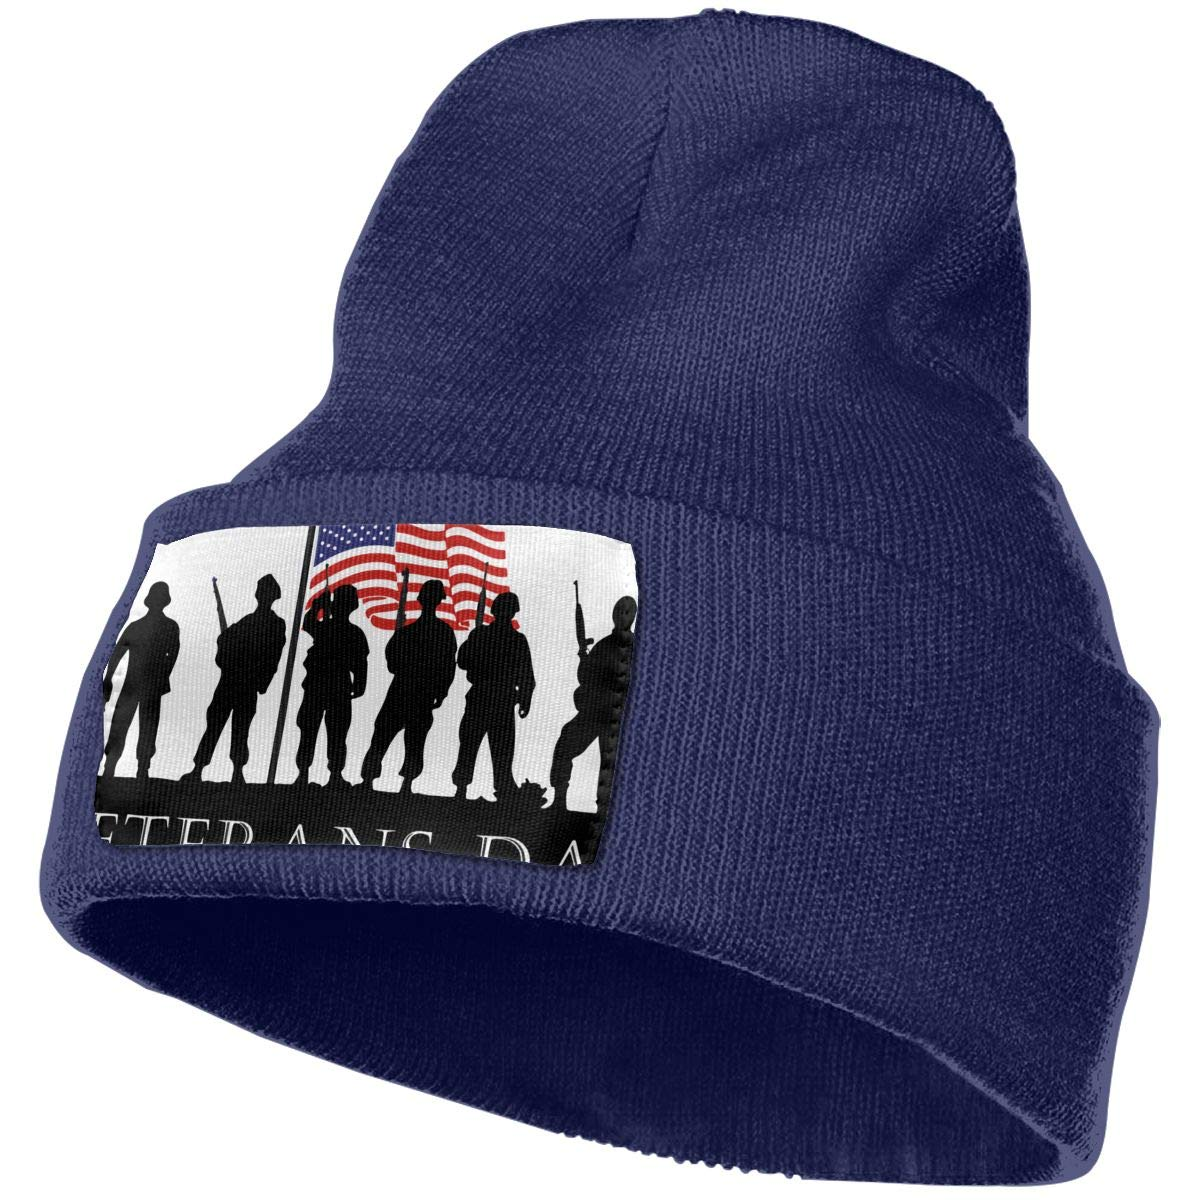 Veterans Day American Flag Soldier Military Beanie Cap Hat Men /& Women Knit Hats Stretchy /& Soft Beanie